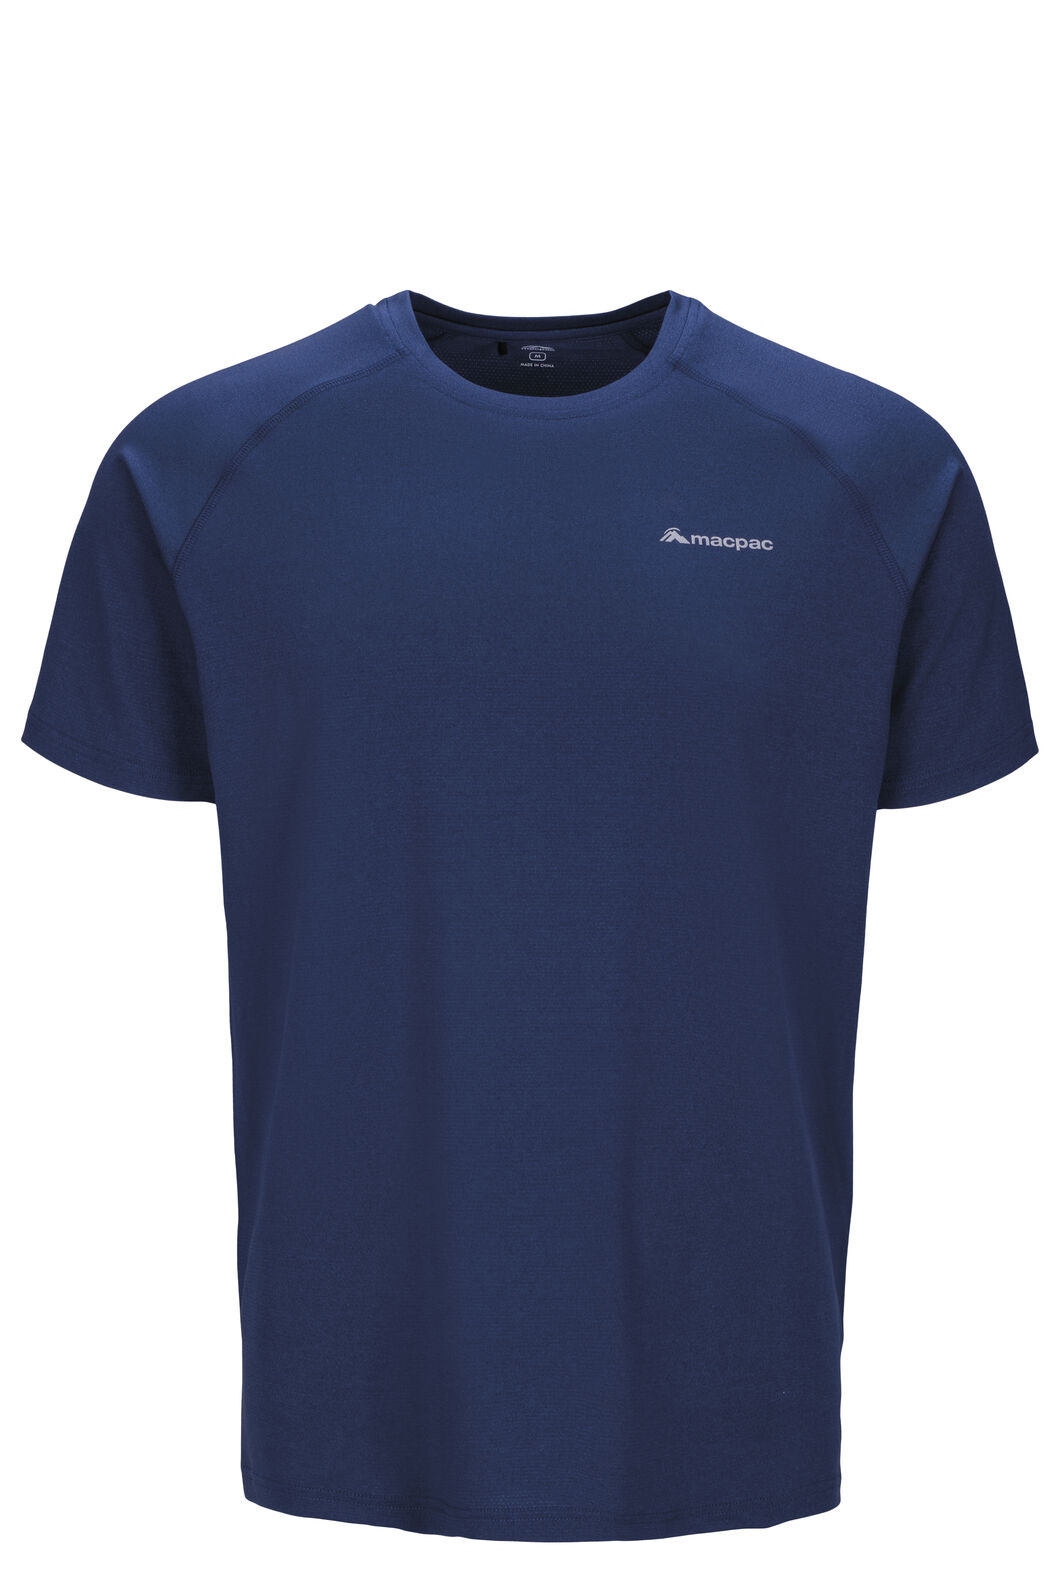 Macpac Eyre Short Sleeve Tee — Men's, Blueprint, hi-res